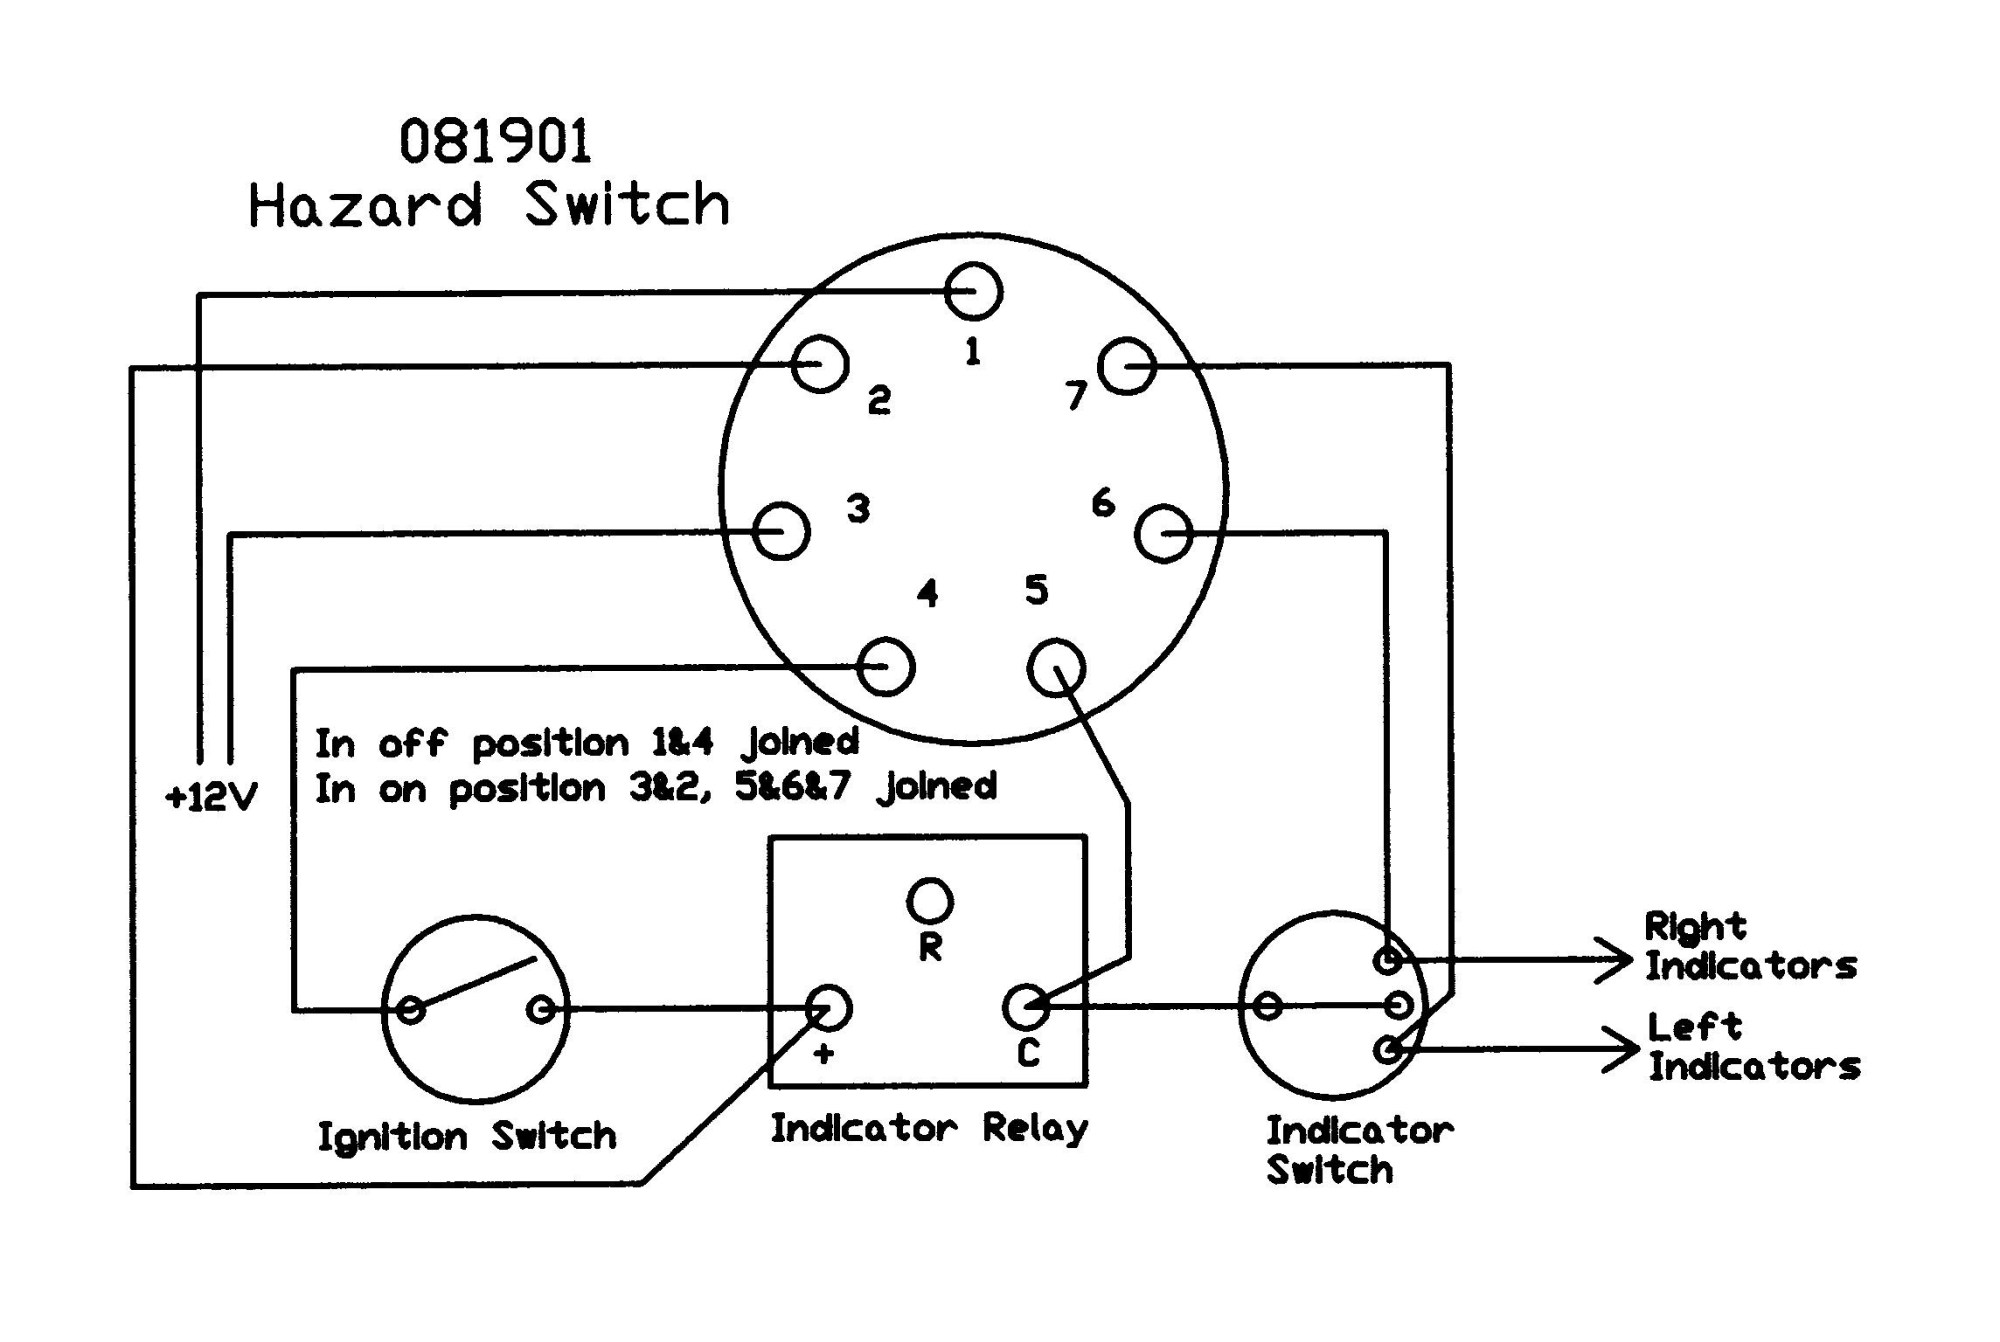 hight resolution of automotive hazard switch wiring diagram free download wiring automotive hazard switch wiring diagram free download